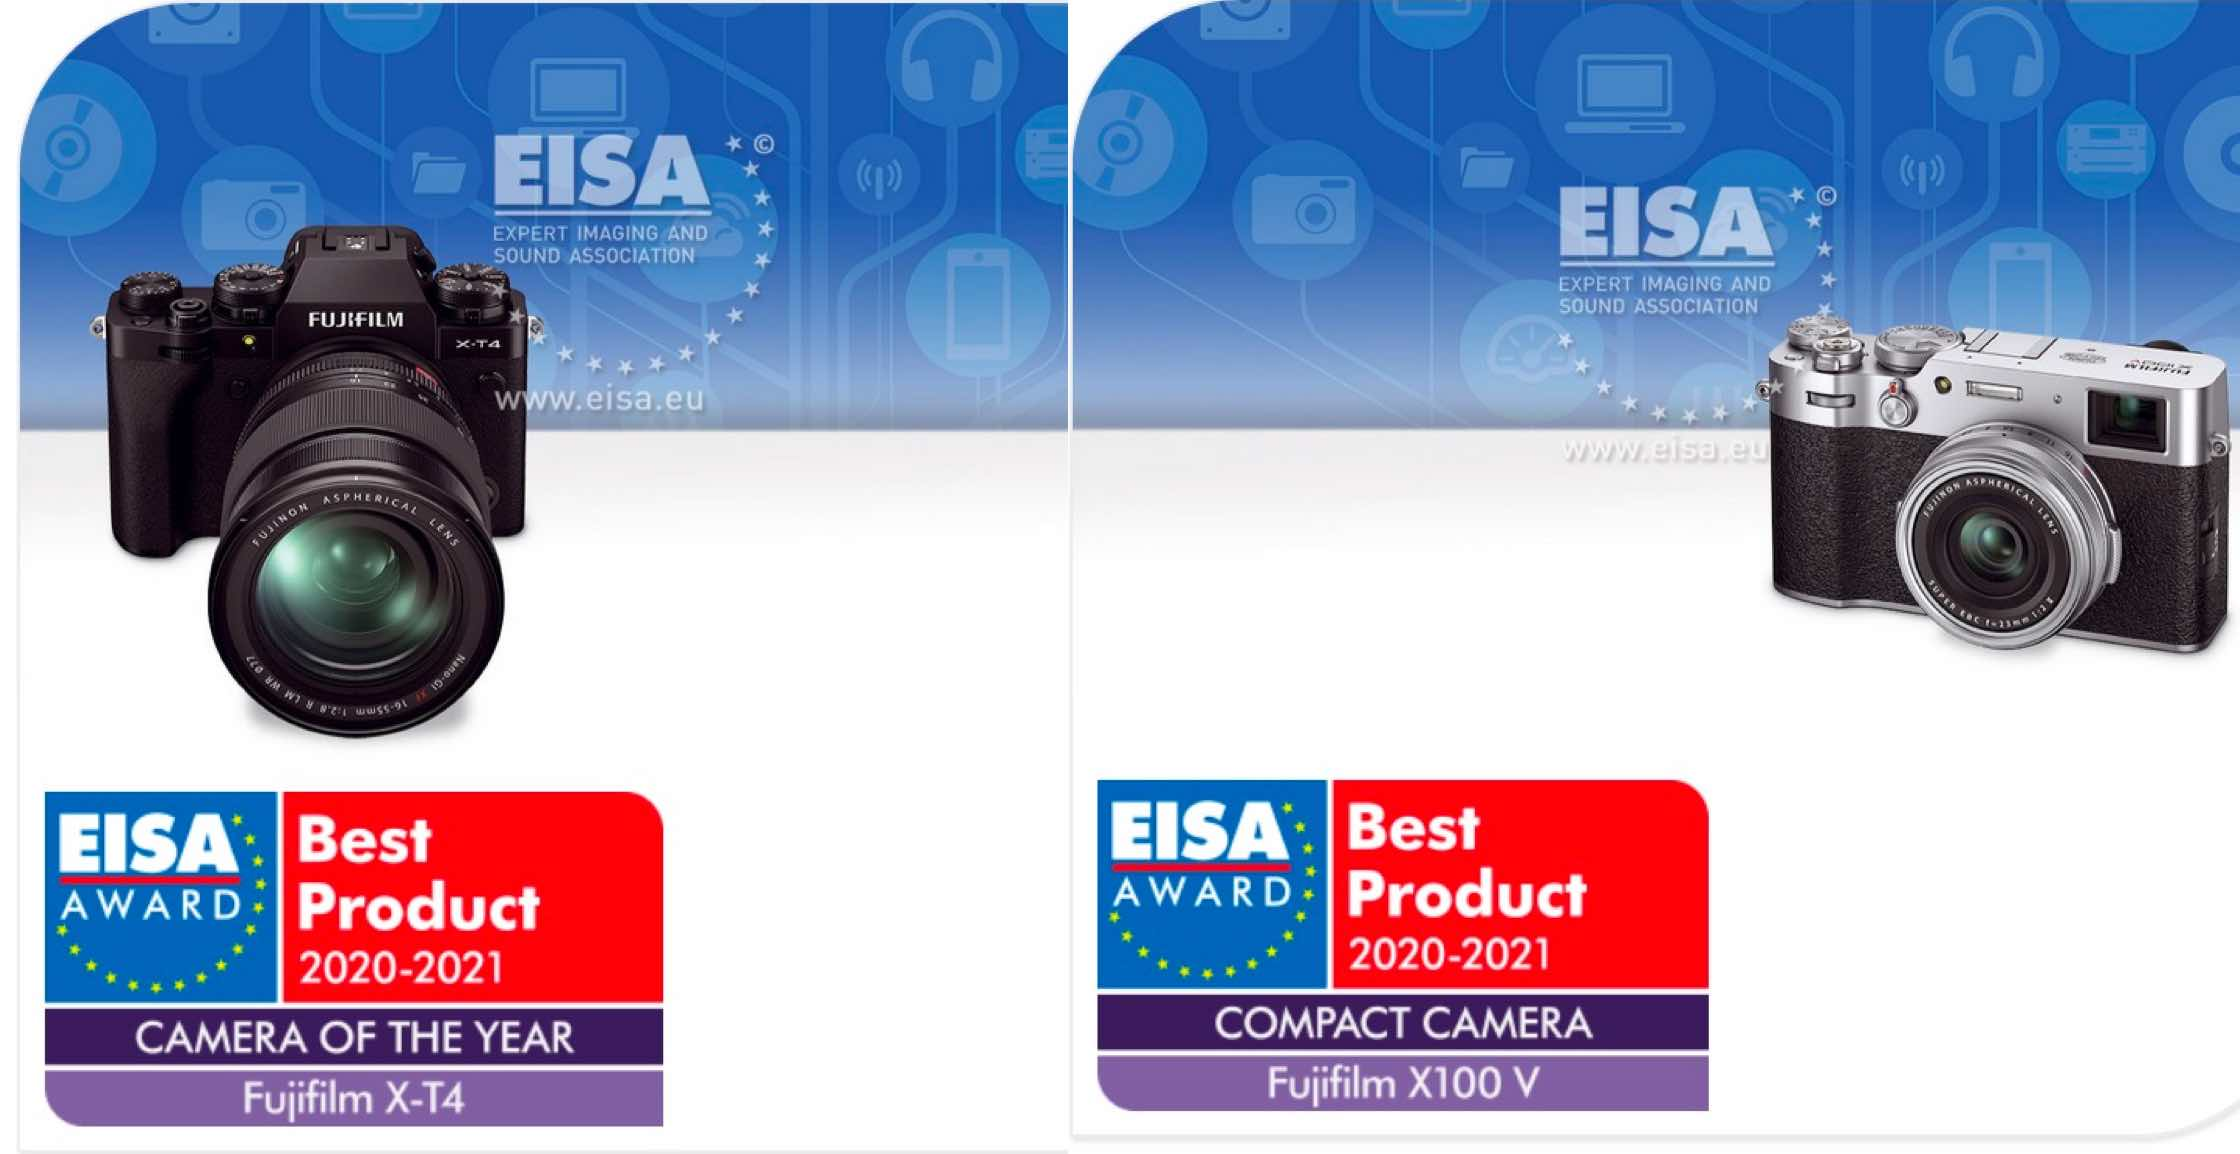 Best Small Camera 2021 EISA Awards: Fujifilm X T4 Best Camera of the Year and X100V Best